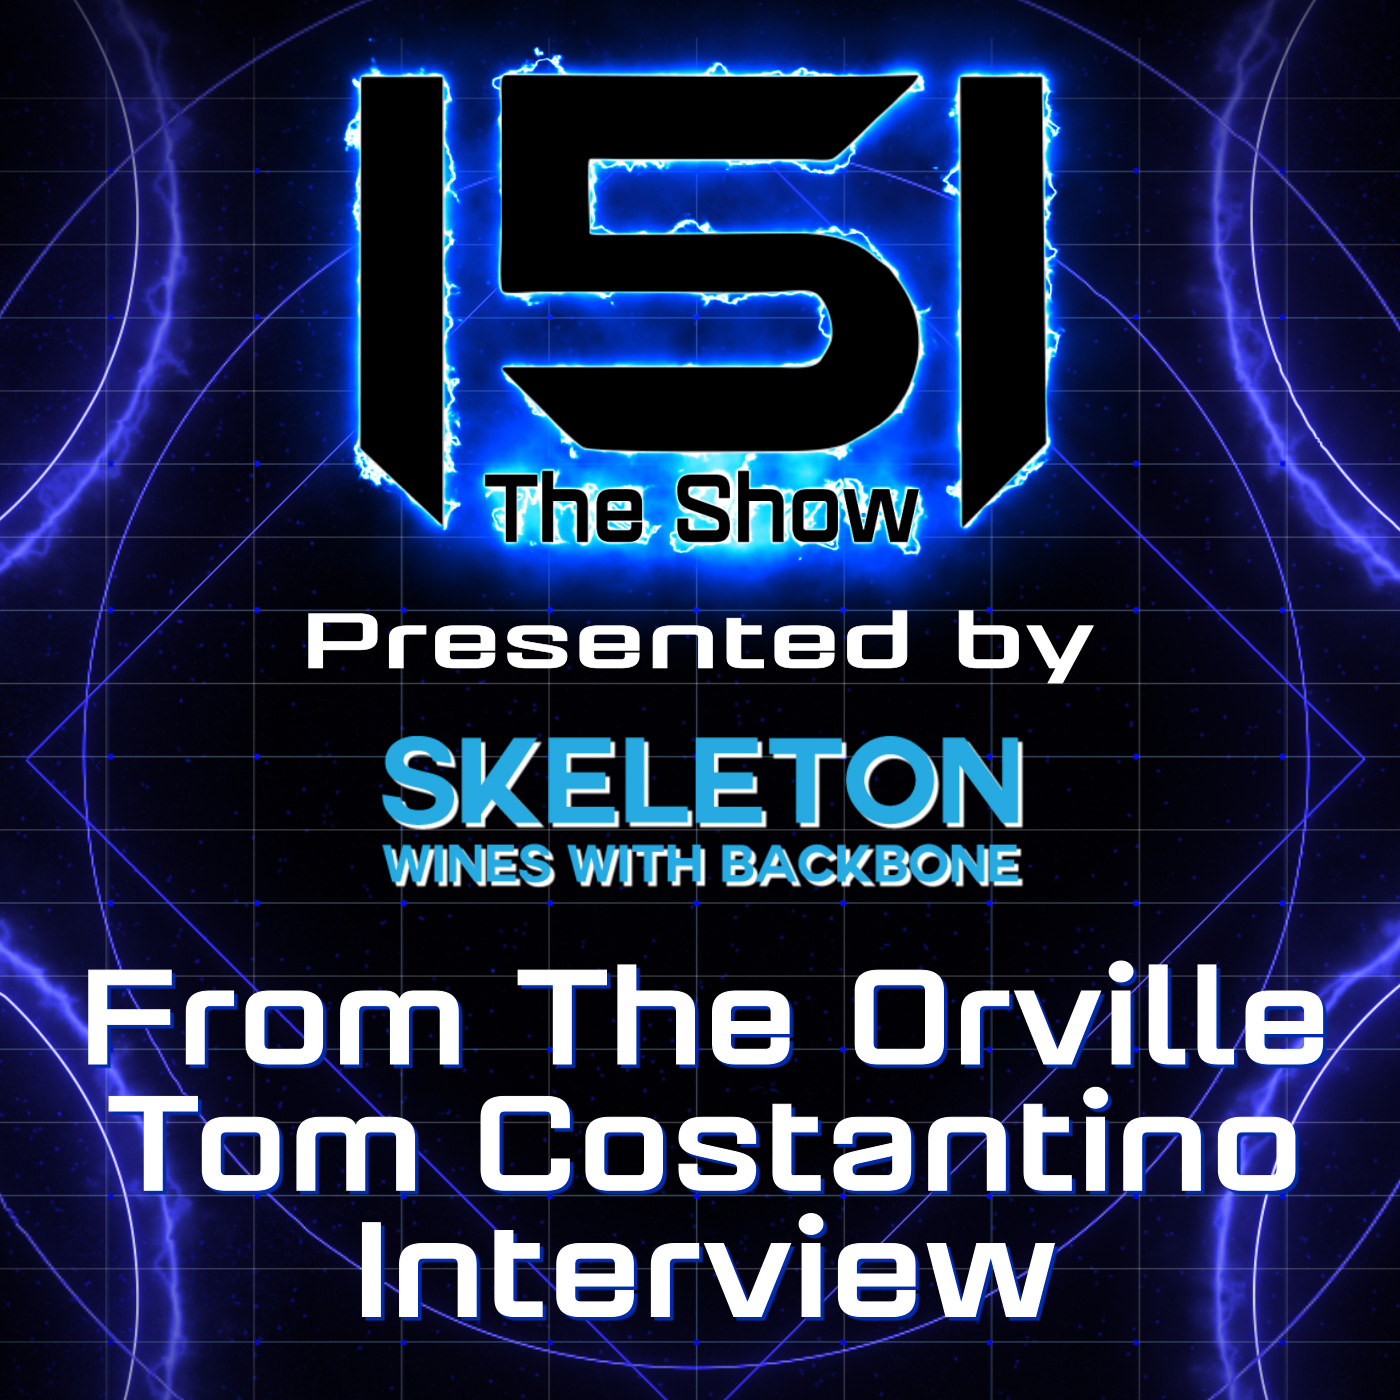 Tom Costantino Interview